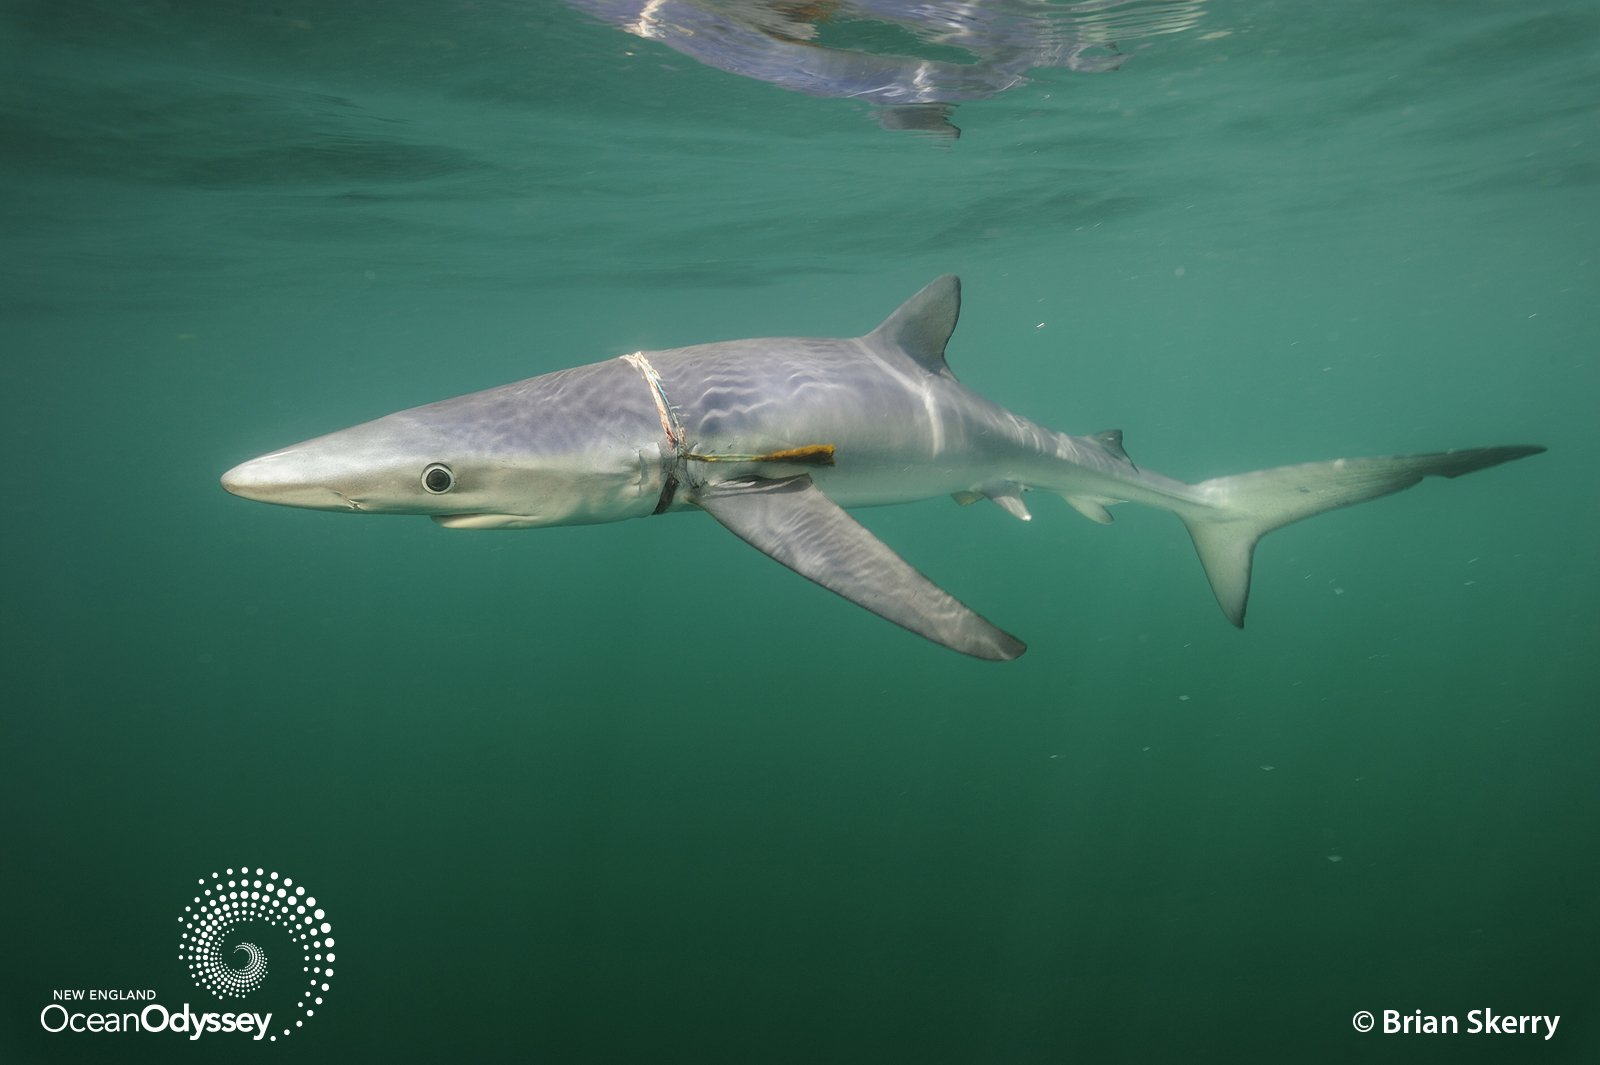 A male Blue Shark with lines and plastic strap wrapped around its body swims below the surface of the sea; New England